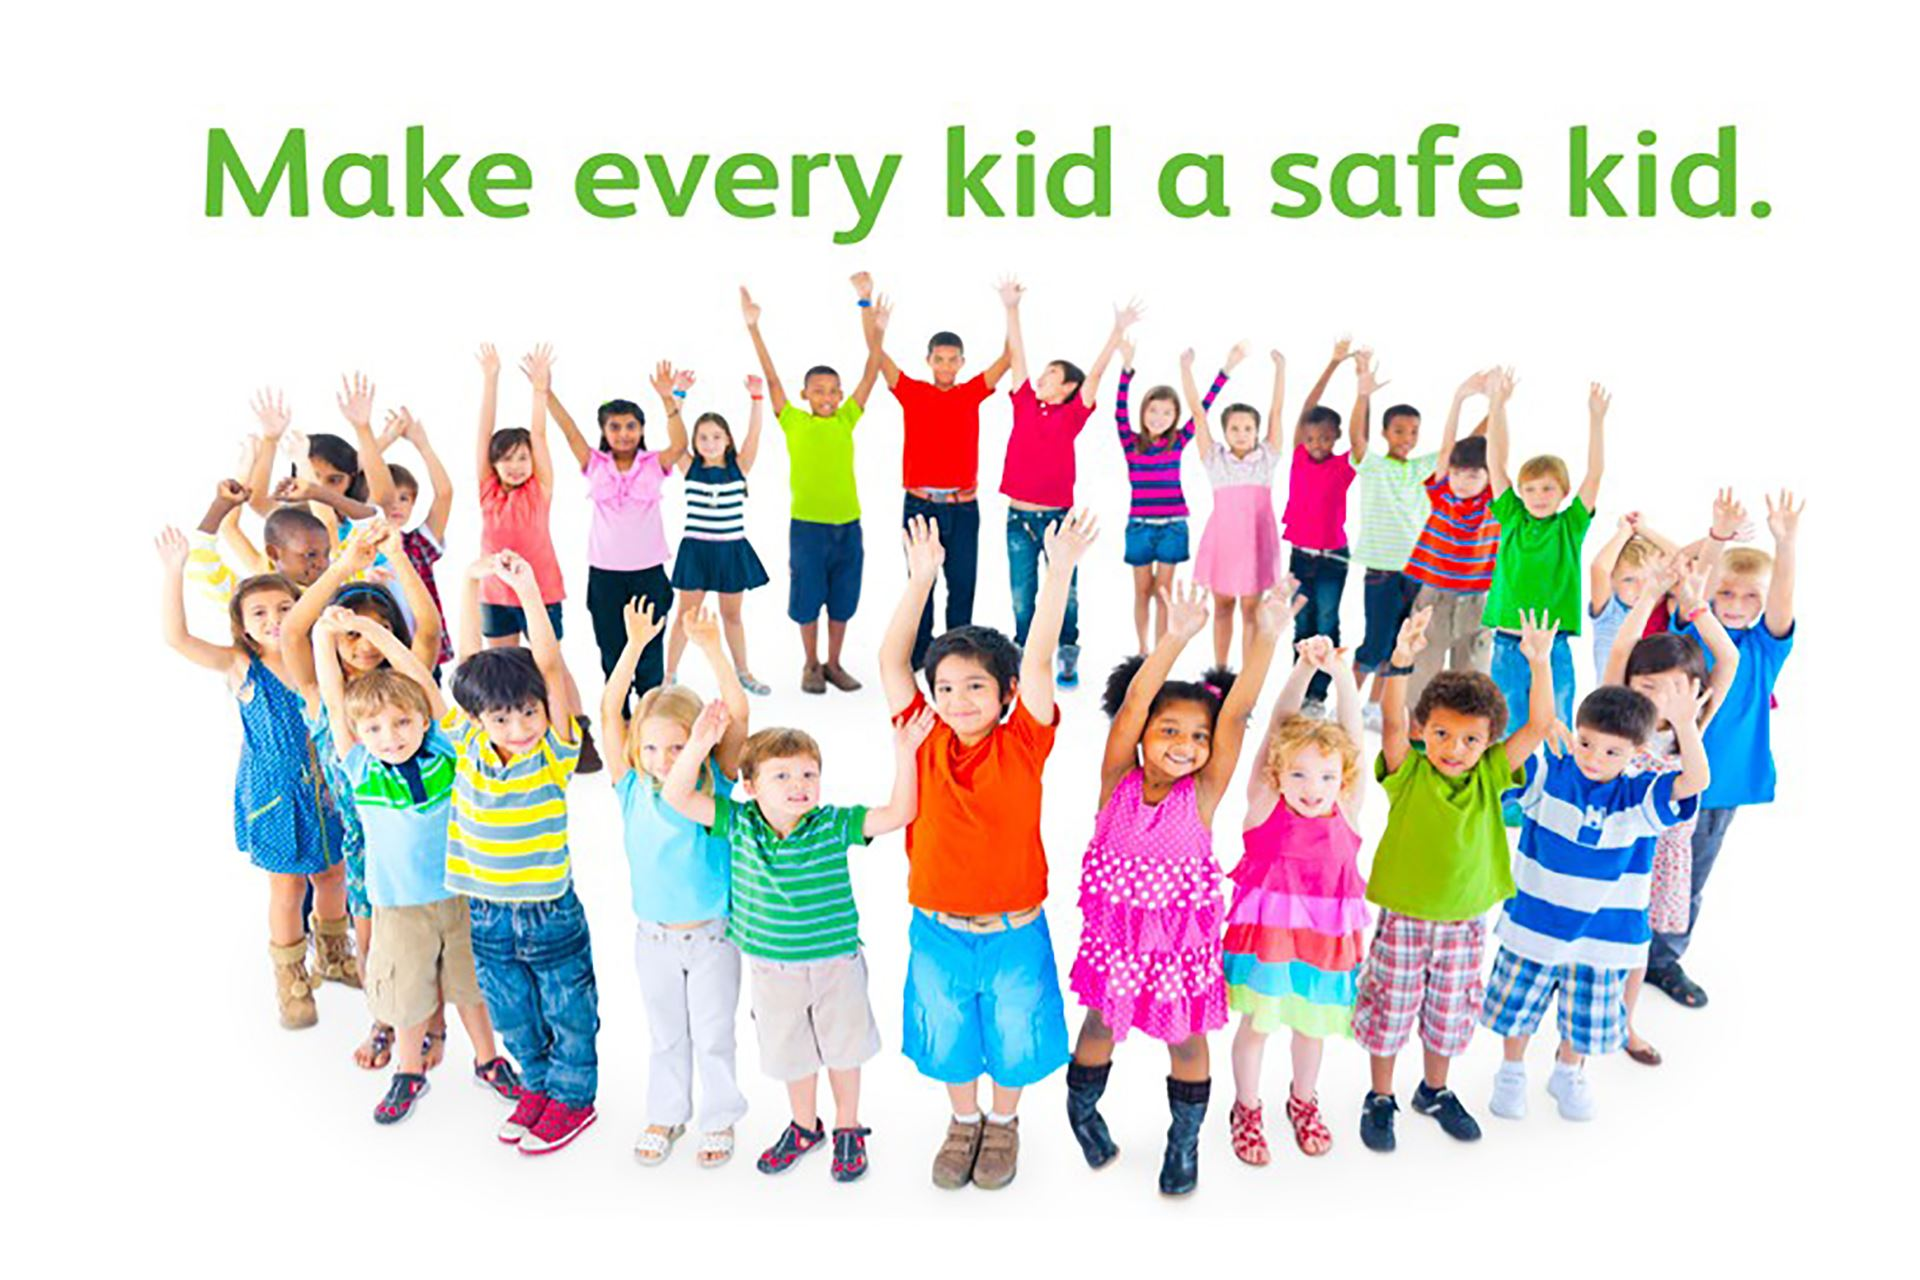 Kids Safety Day 1920 x 1280